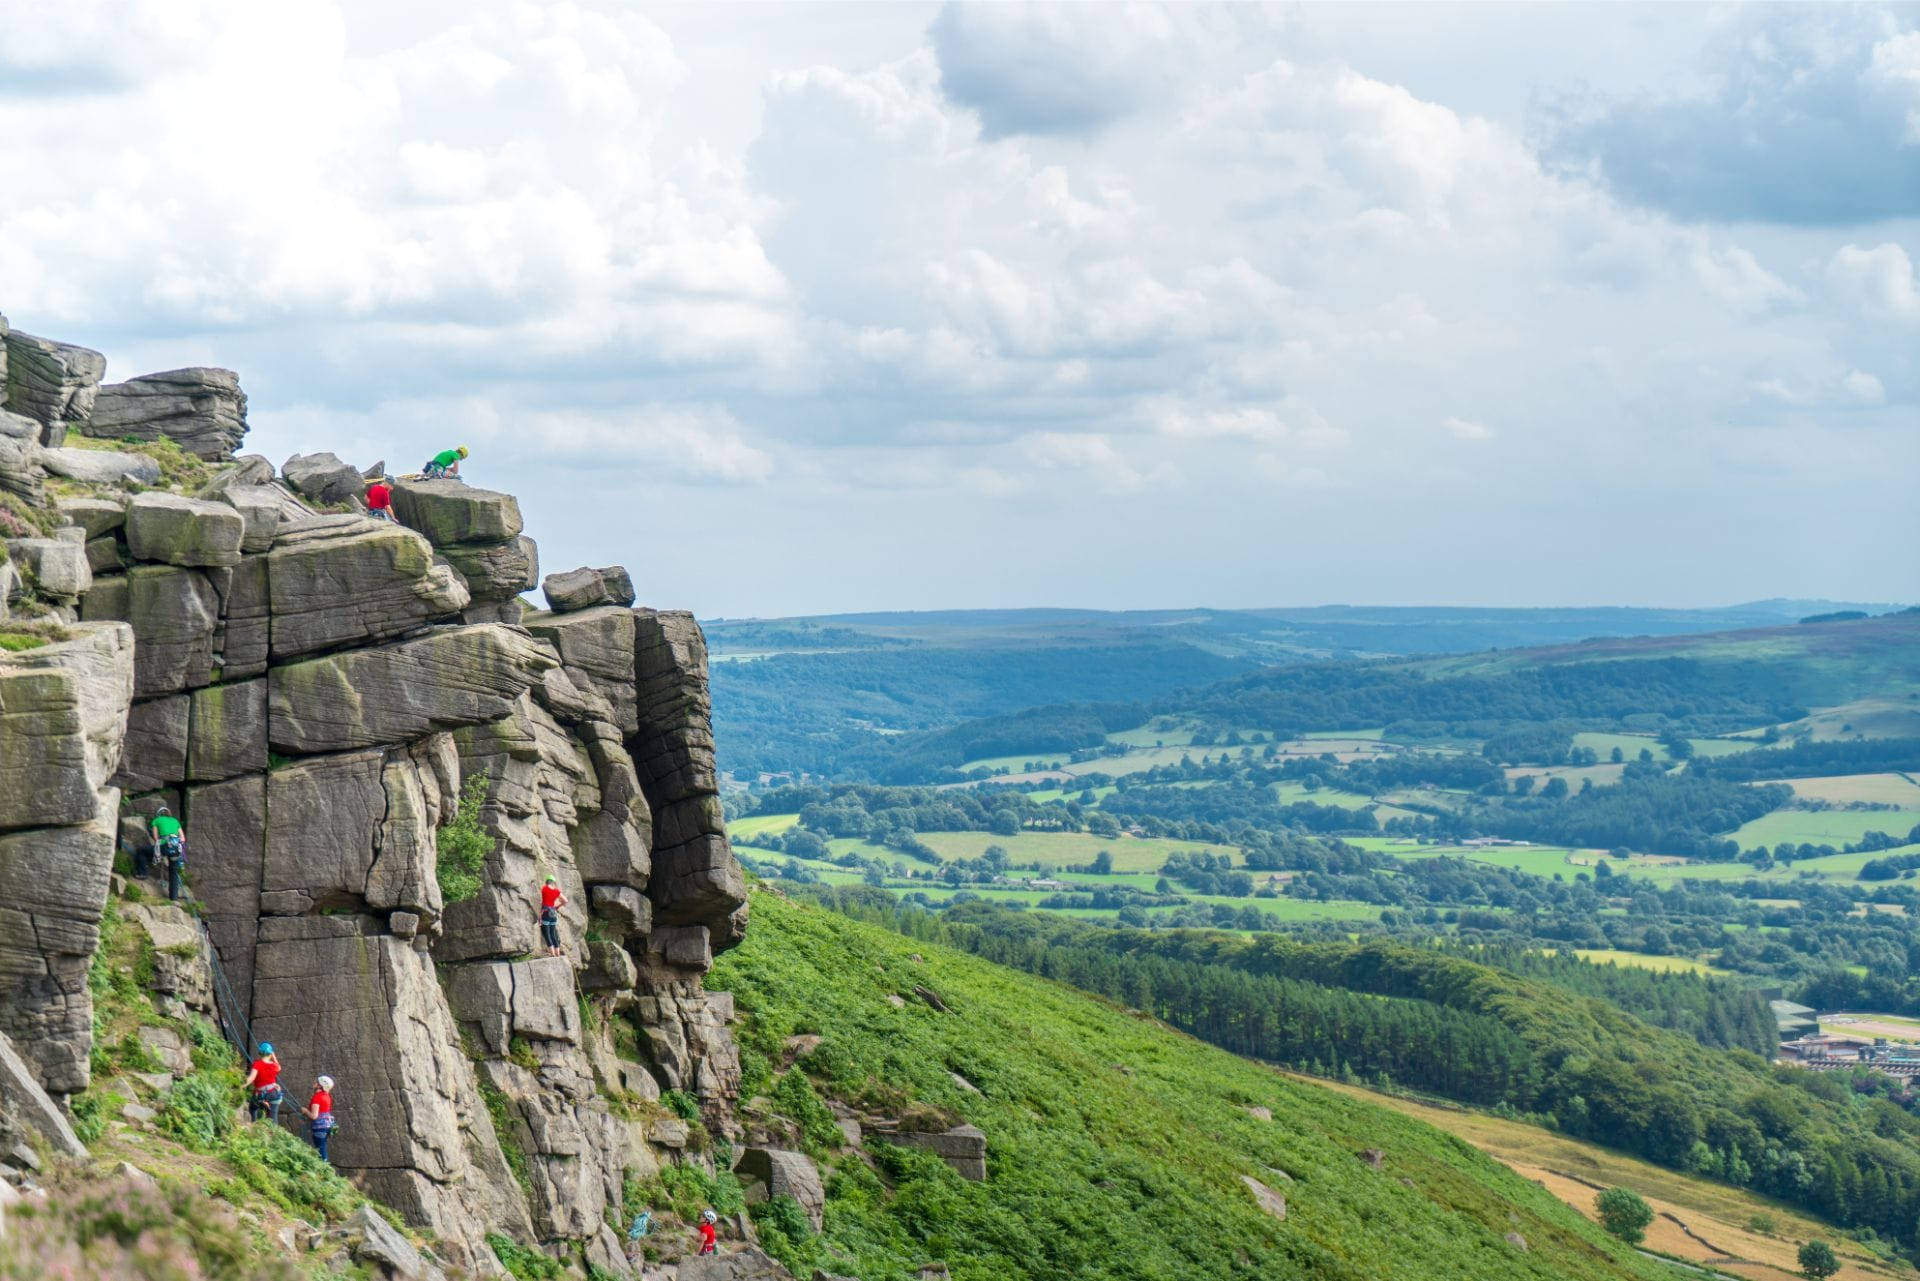 people-rock-climbing-up-a-rock-edge-with-rolling-green-hills-in-background-at-bamford-edge-in-the-peak-district